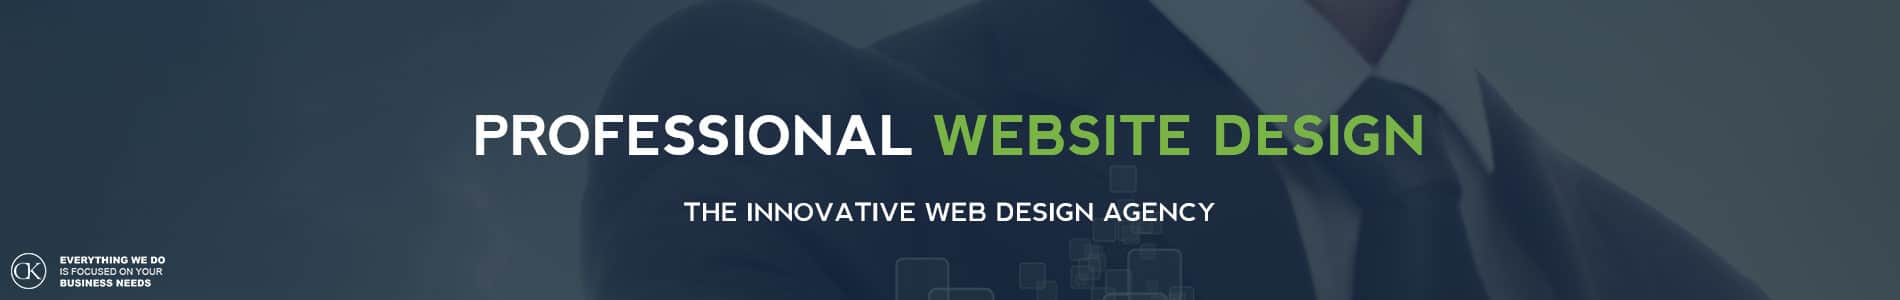 professional website design dublin by ck web design ireland